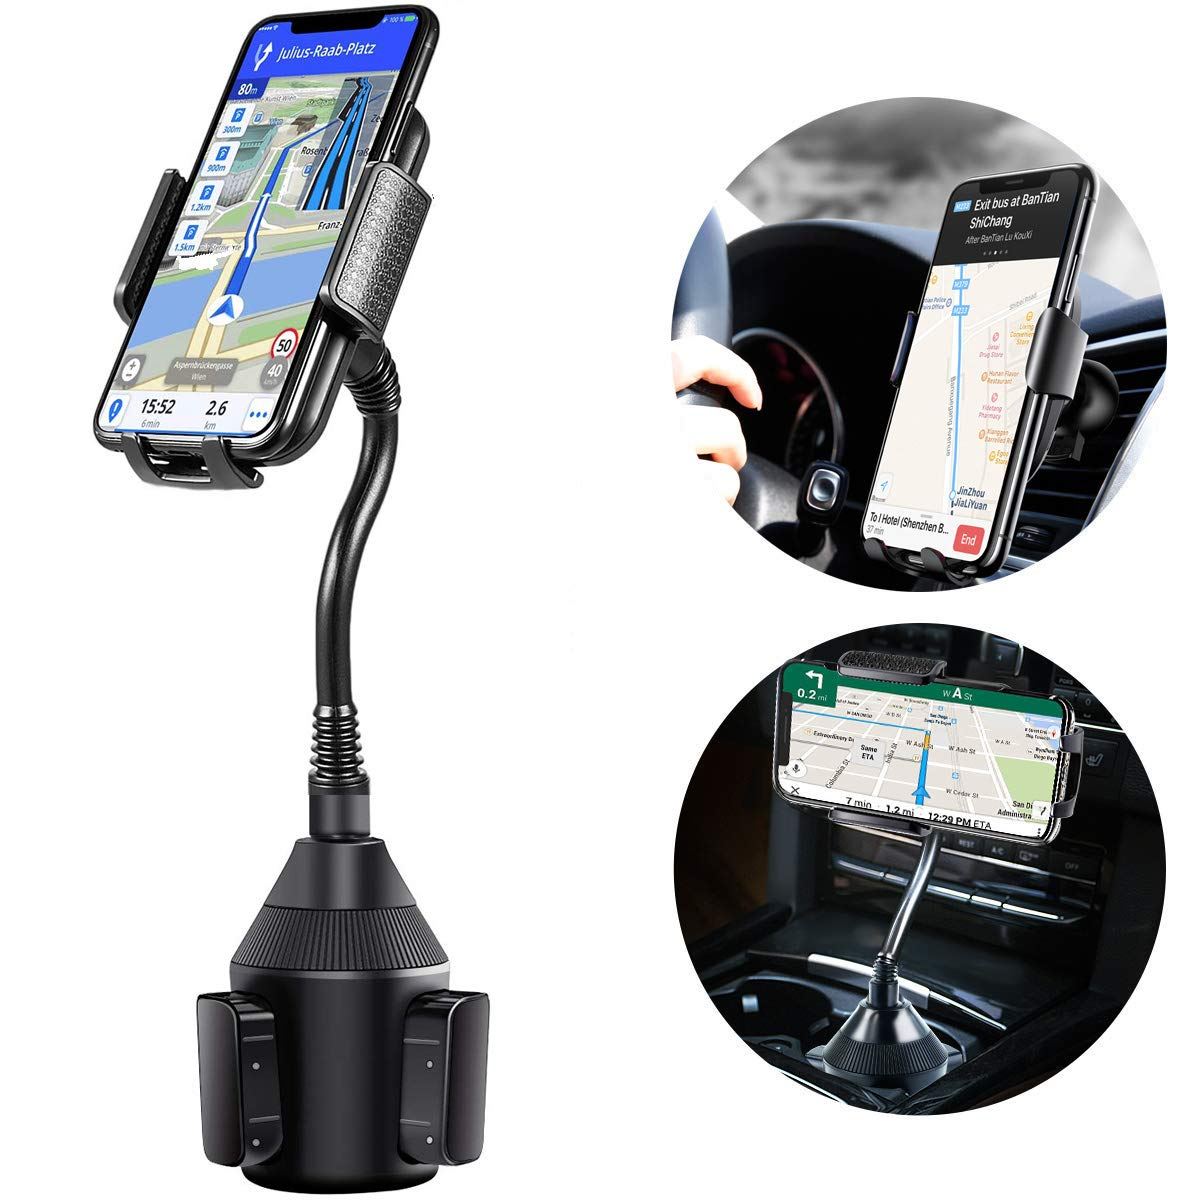 Great cell phone holder